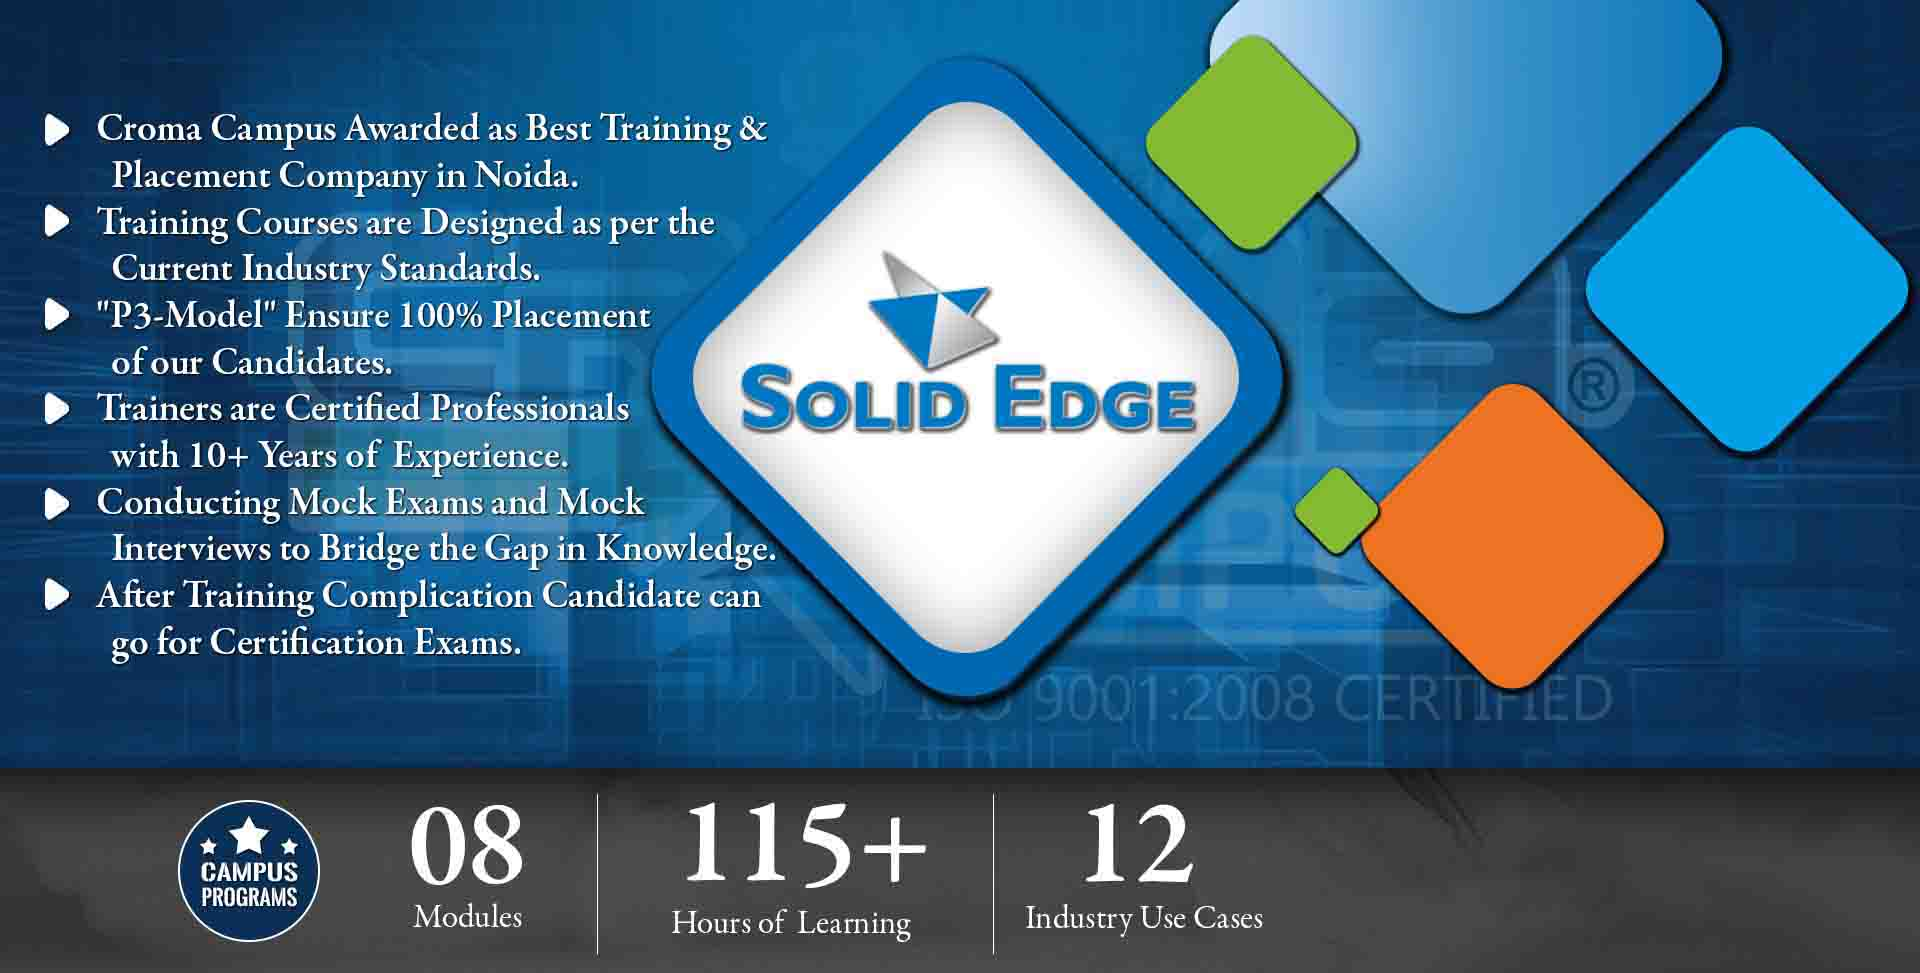 Solid Edge Training in Delhi NCR- Croma Campus